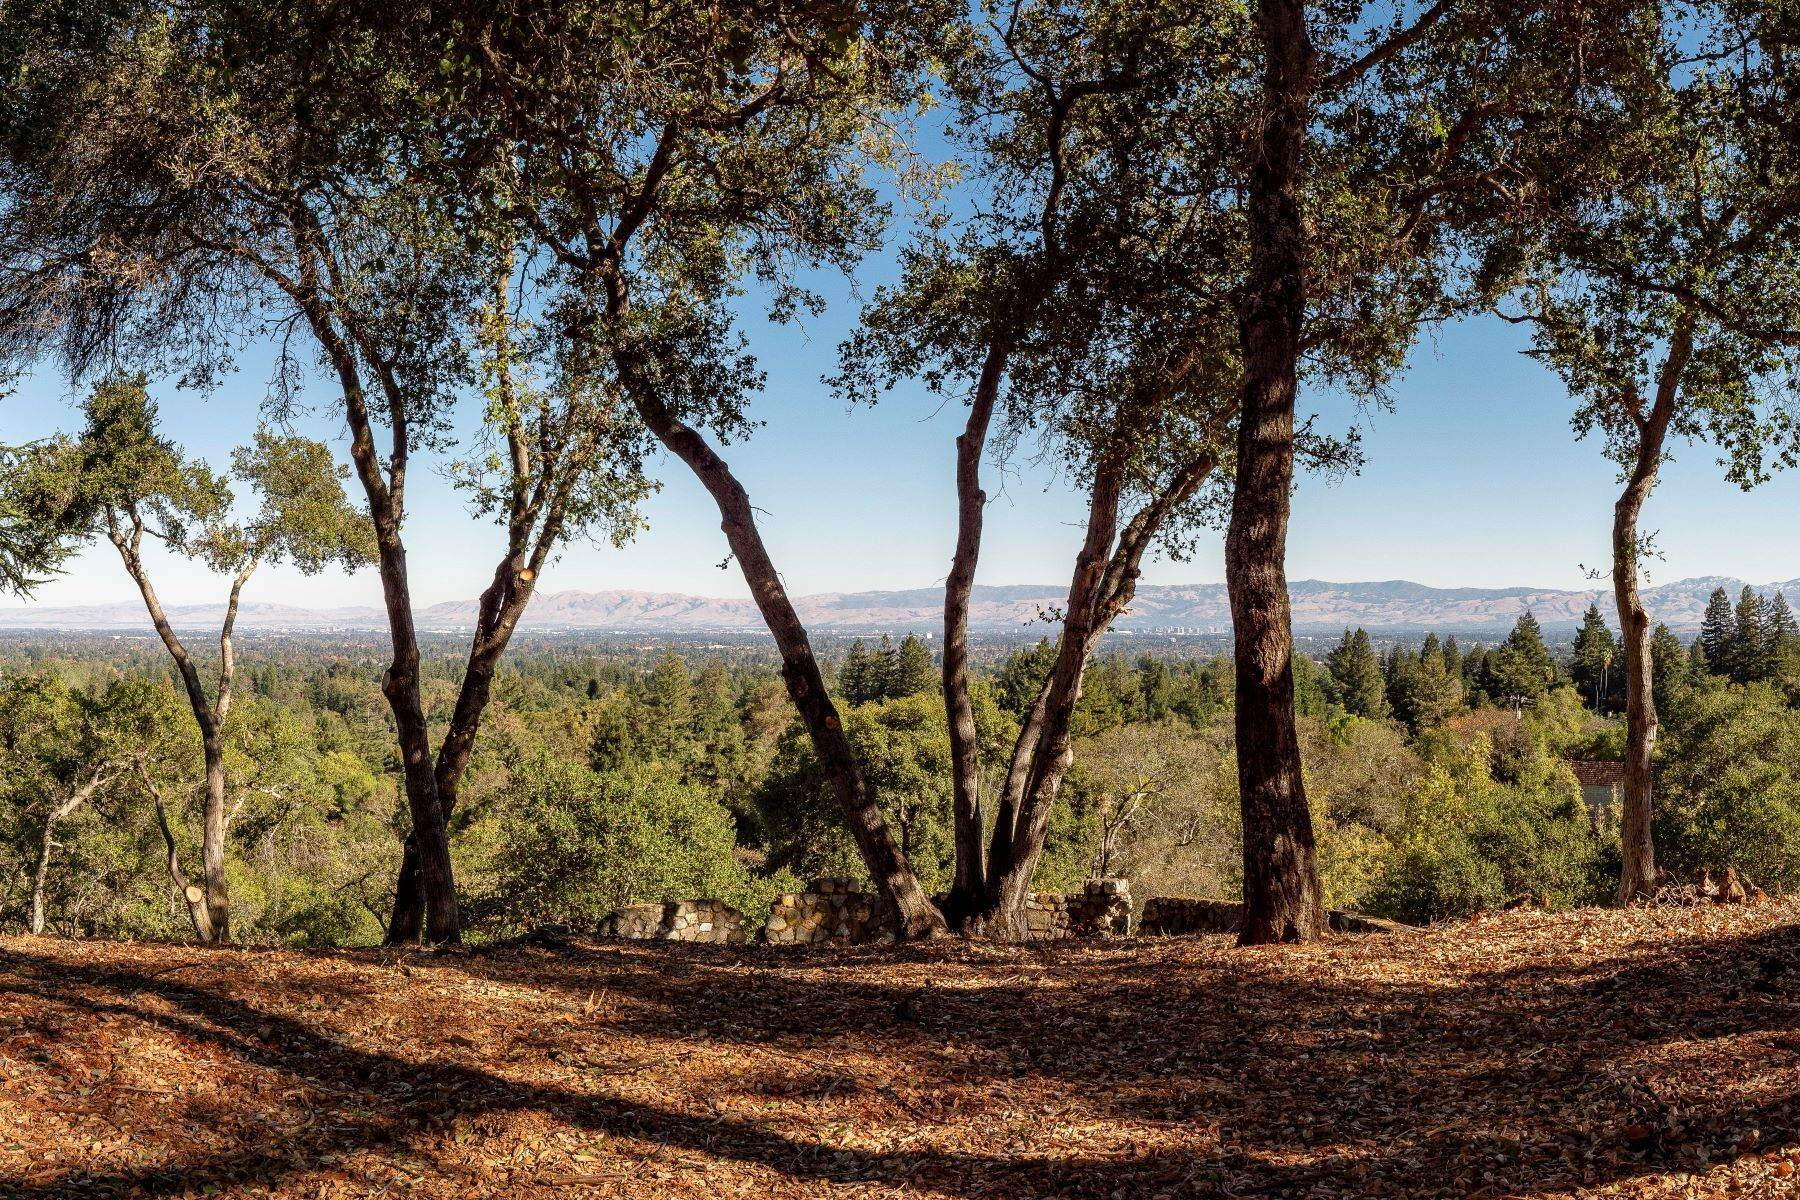 Land for Sale at 15400 Madrone Hill Road, Saratoga 15400 Madrone Hill Road Saratoga, California 95070 United States